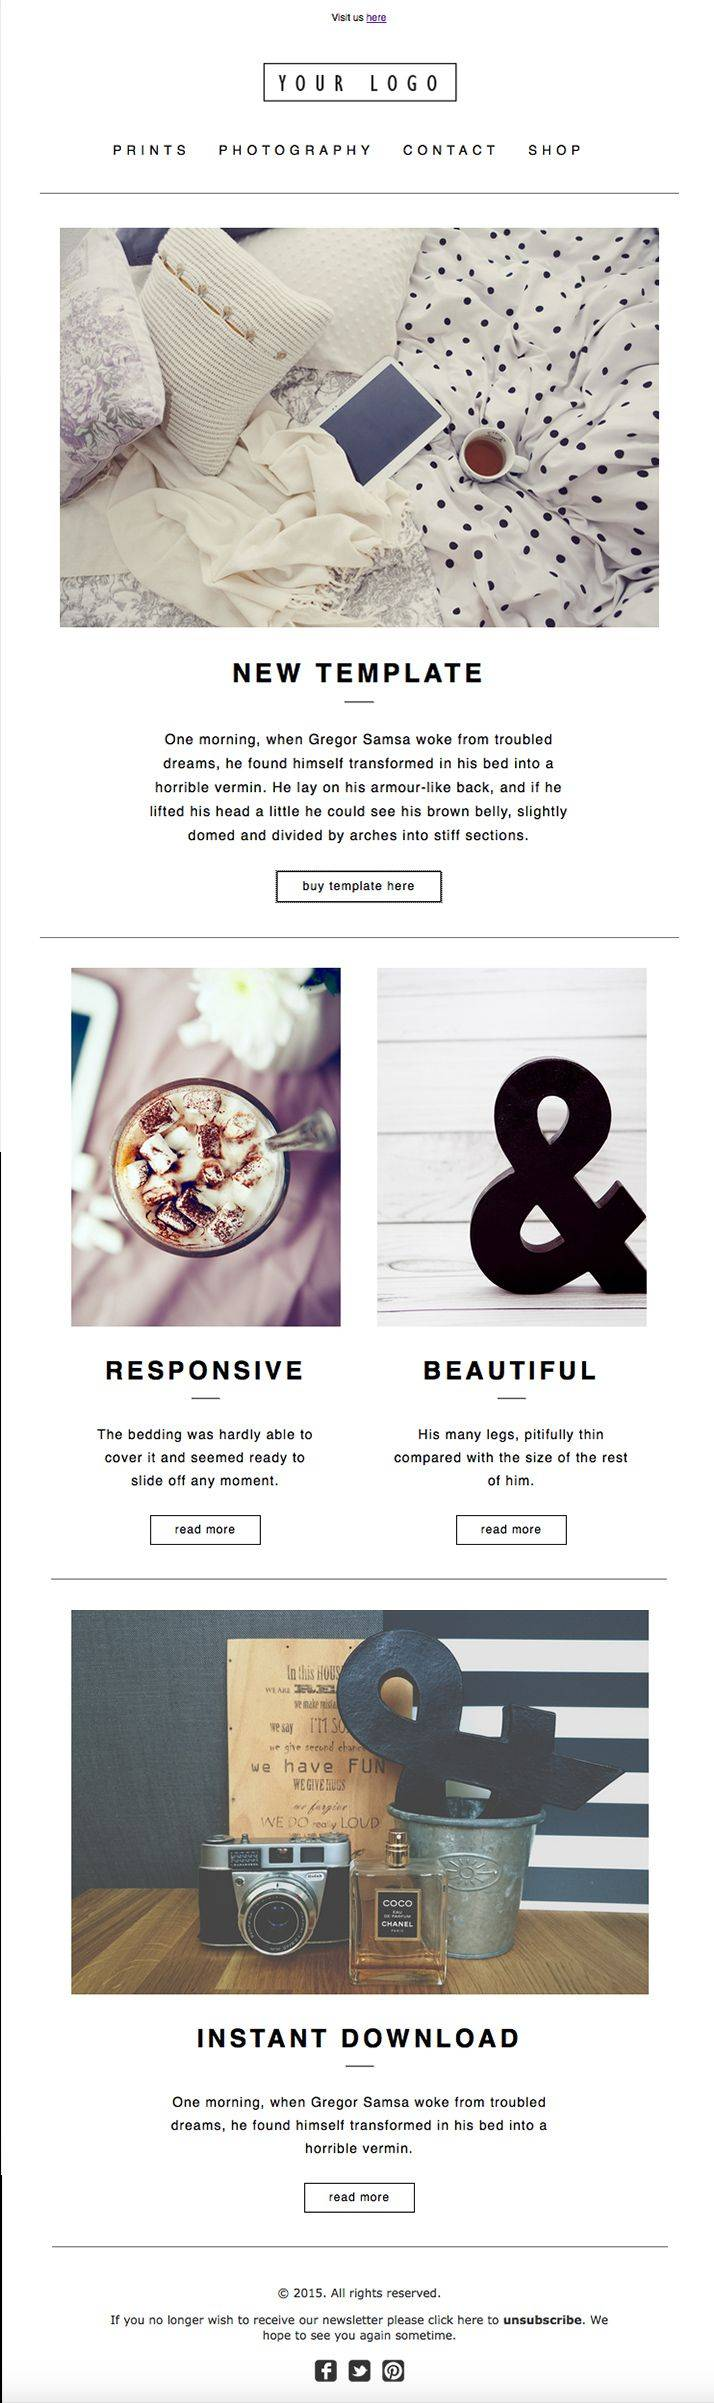 Mailchimp Newsletter Template Design